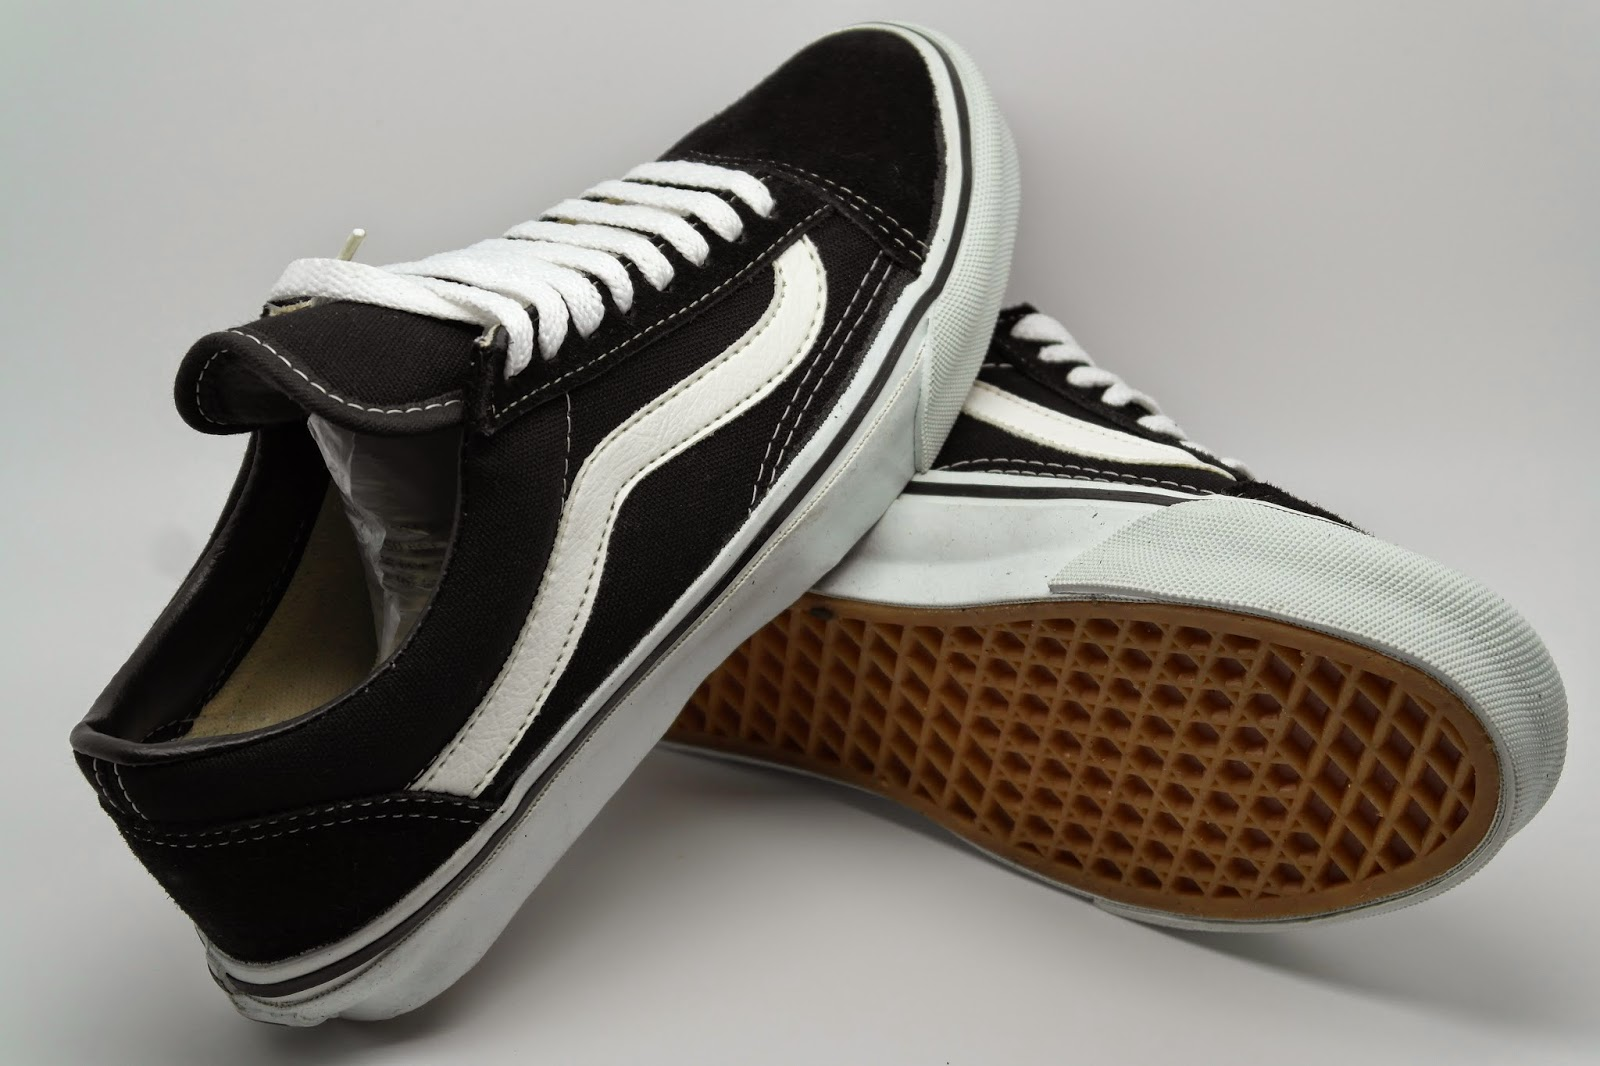 vans old skool 7